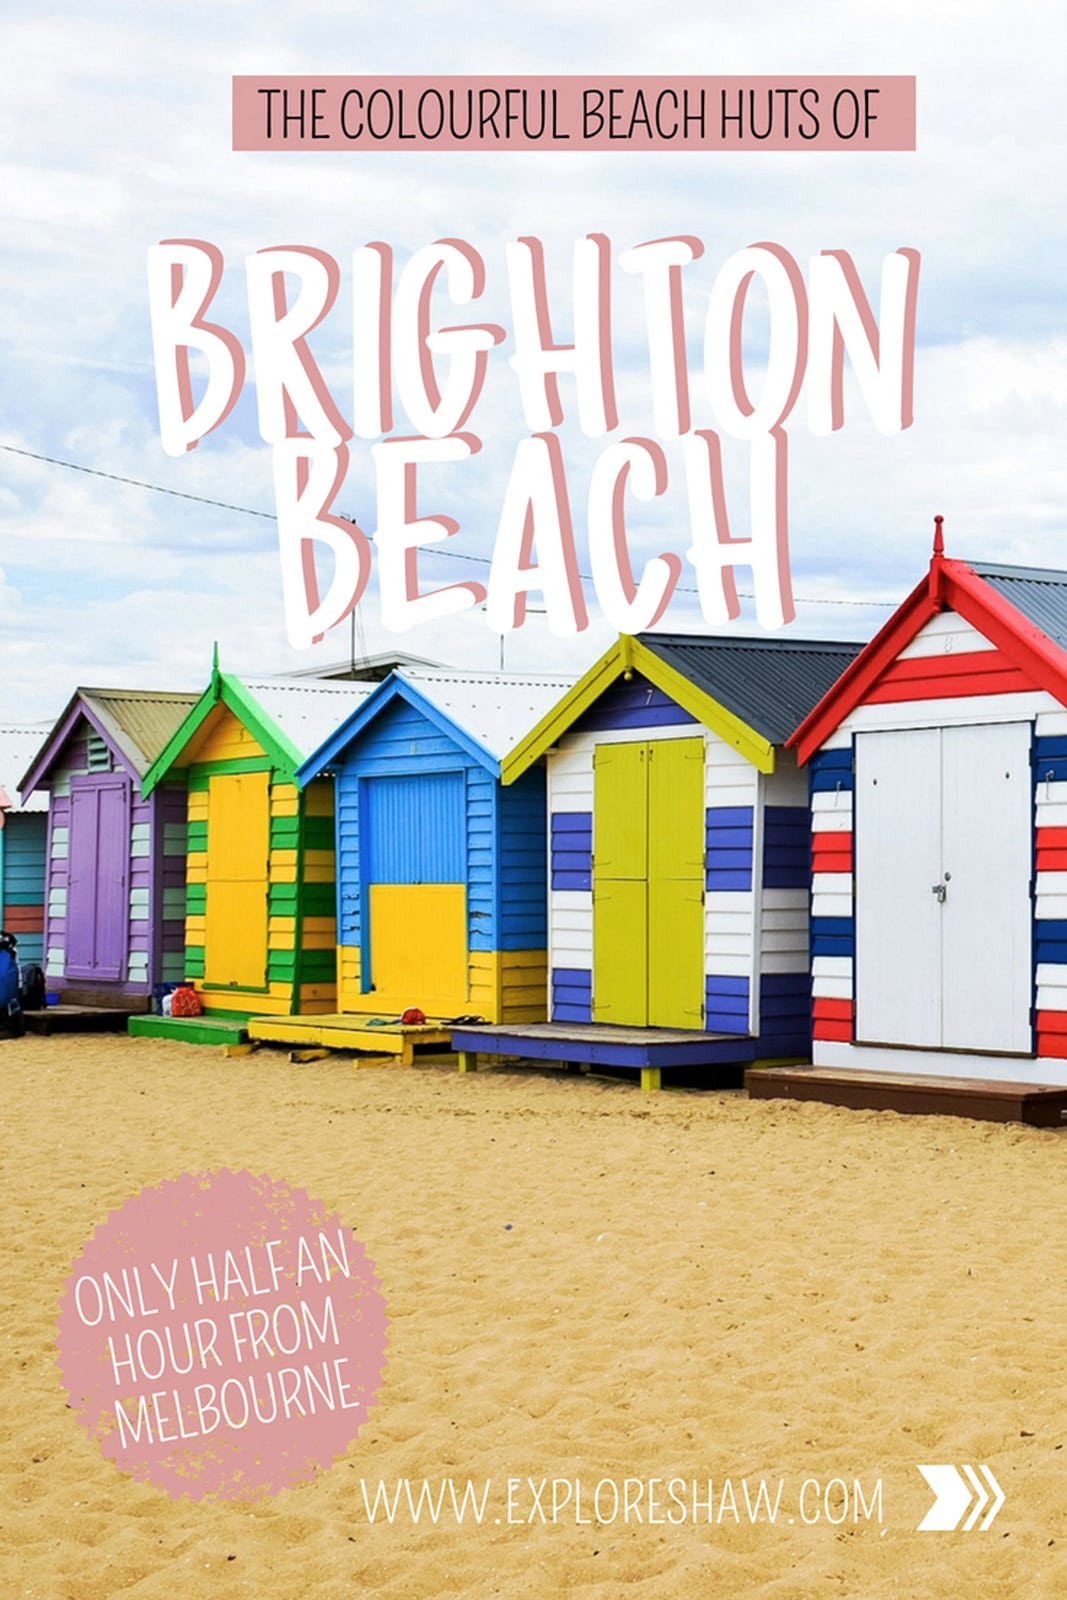 Hanging out at the home of the colourful bathing boxes at Brighton Beach. #Australia #Melbourne #Victoria #BrightonBeach